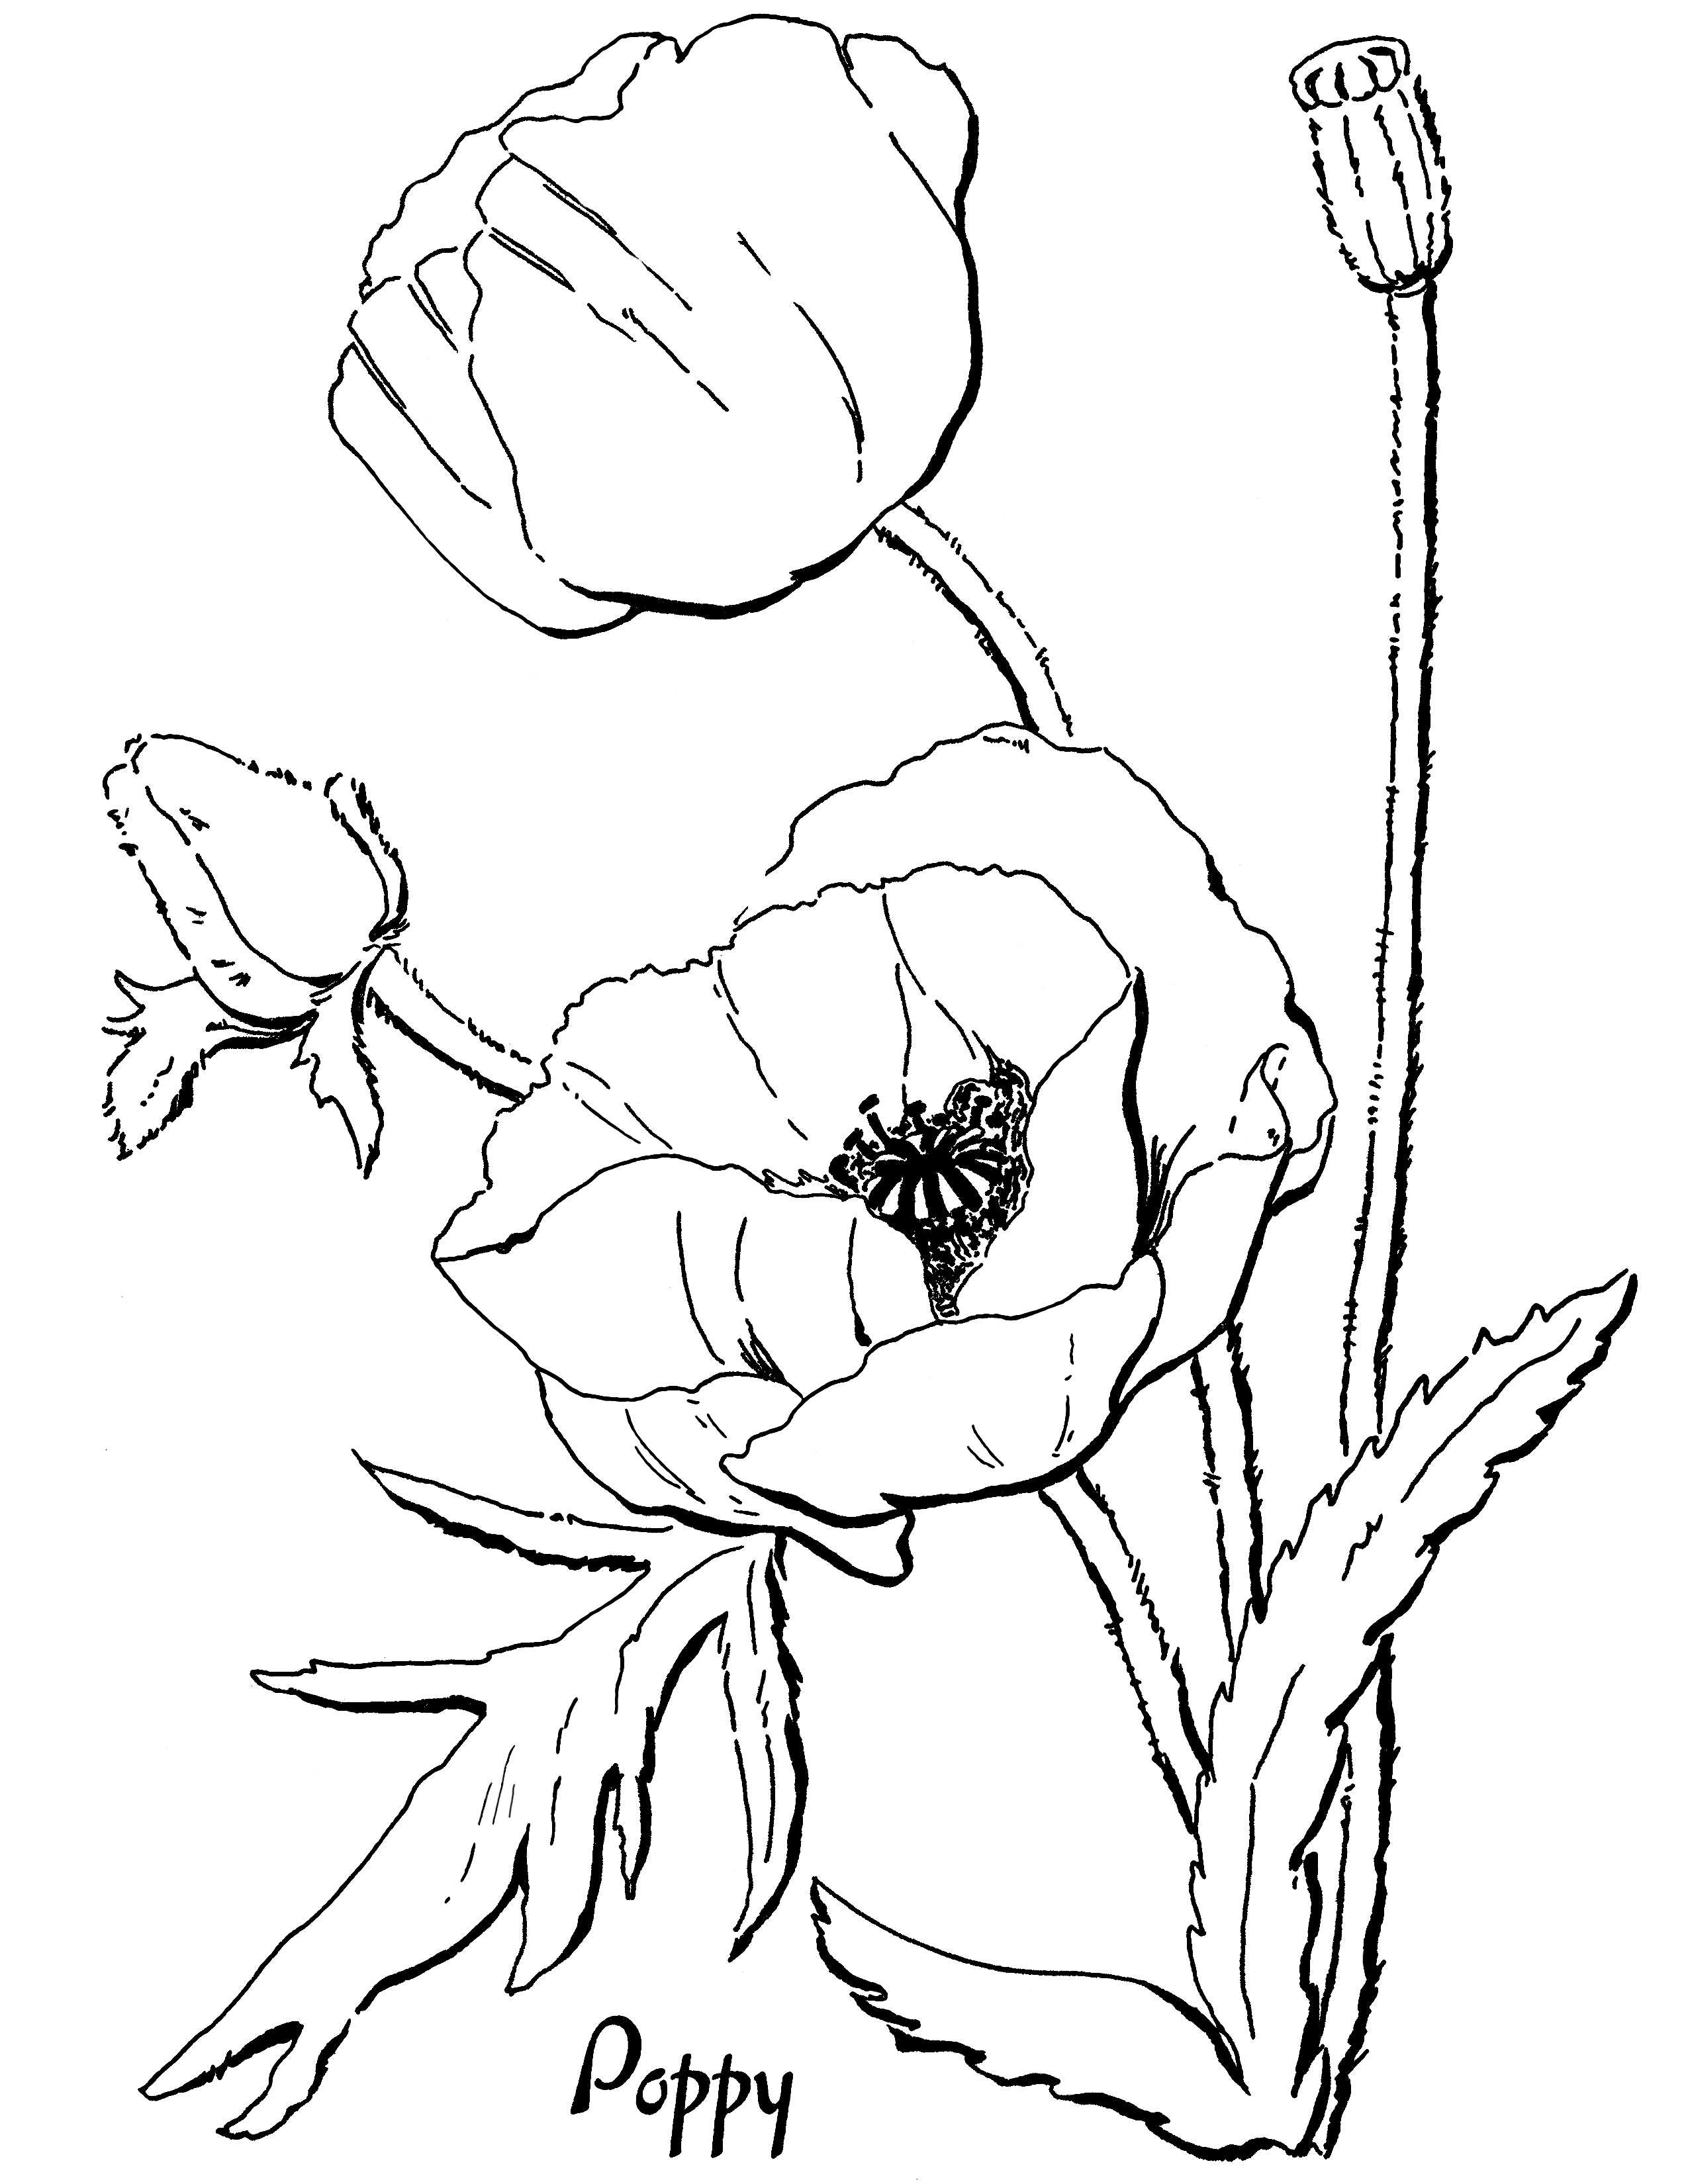 poppy coloring page poppy coloring page free printable coloring pages coloring page poppy